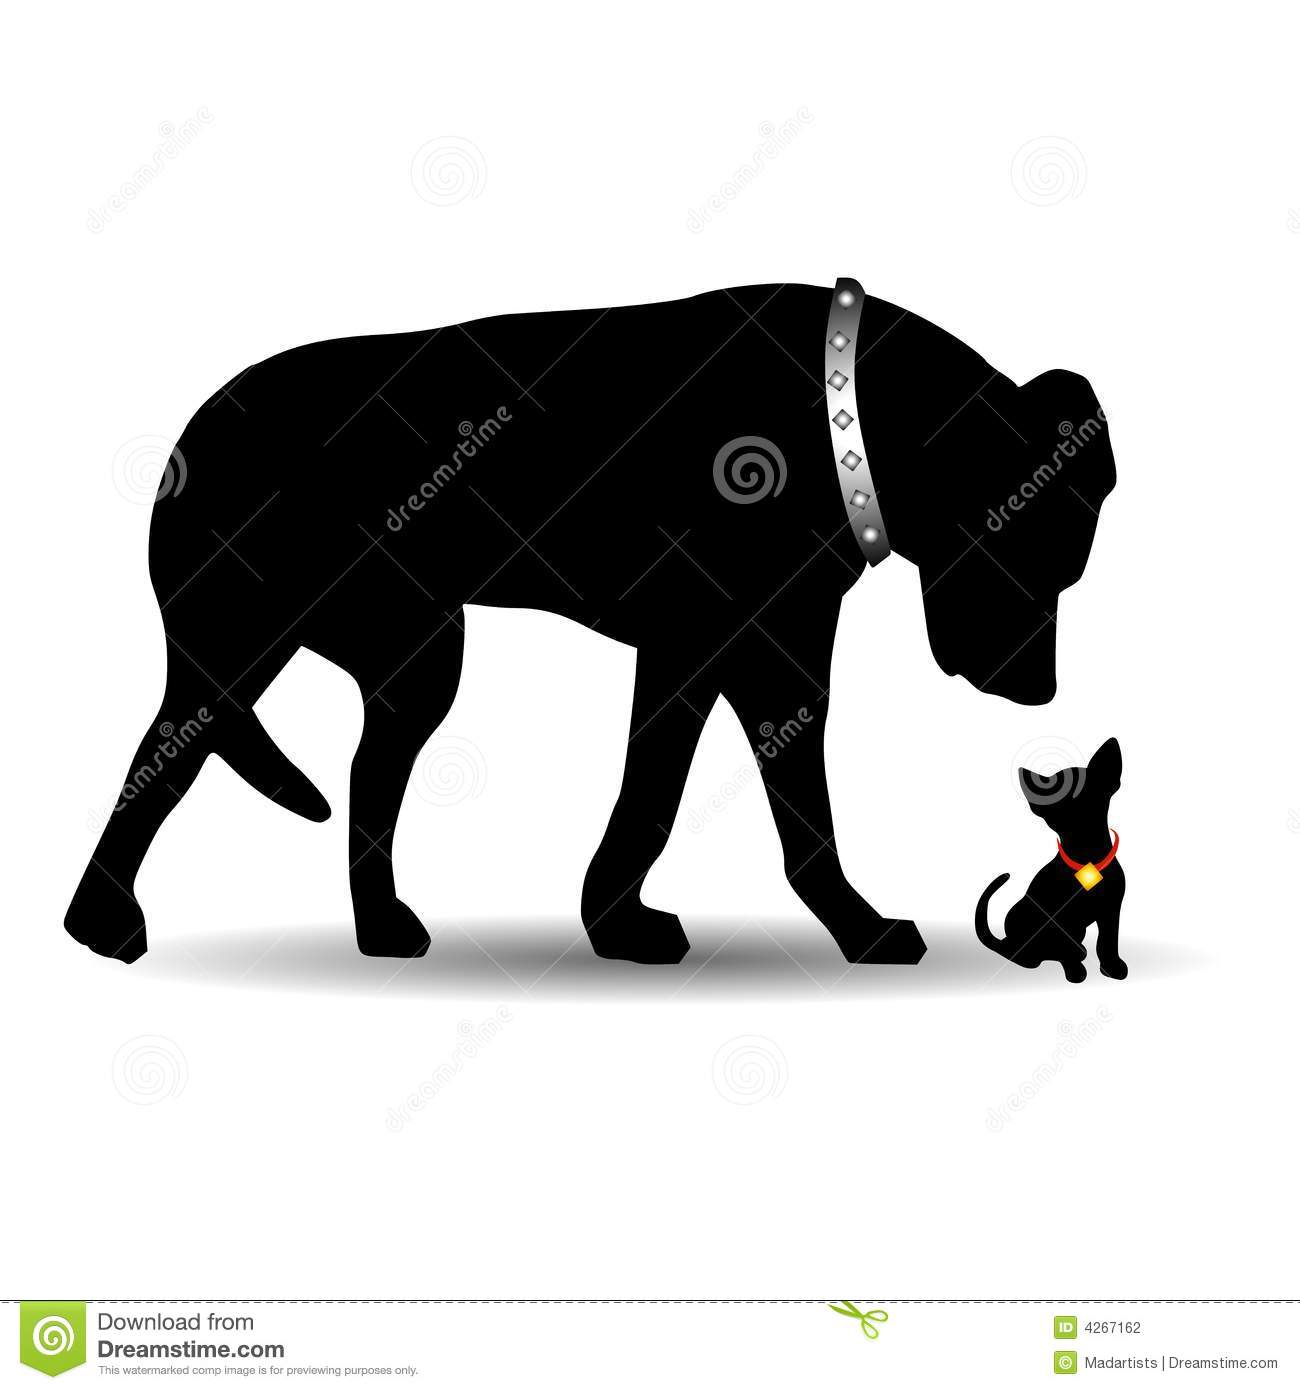 Big and small dog clipart clip art download Silhouette Big Dog Little Dog Stock Photography - Image: 4267162 clip art download